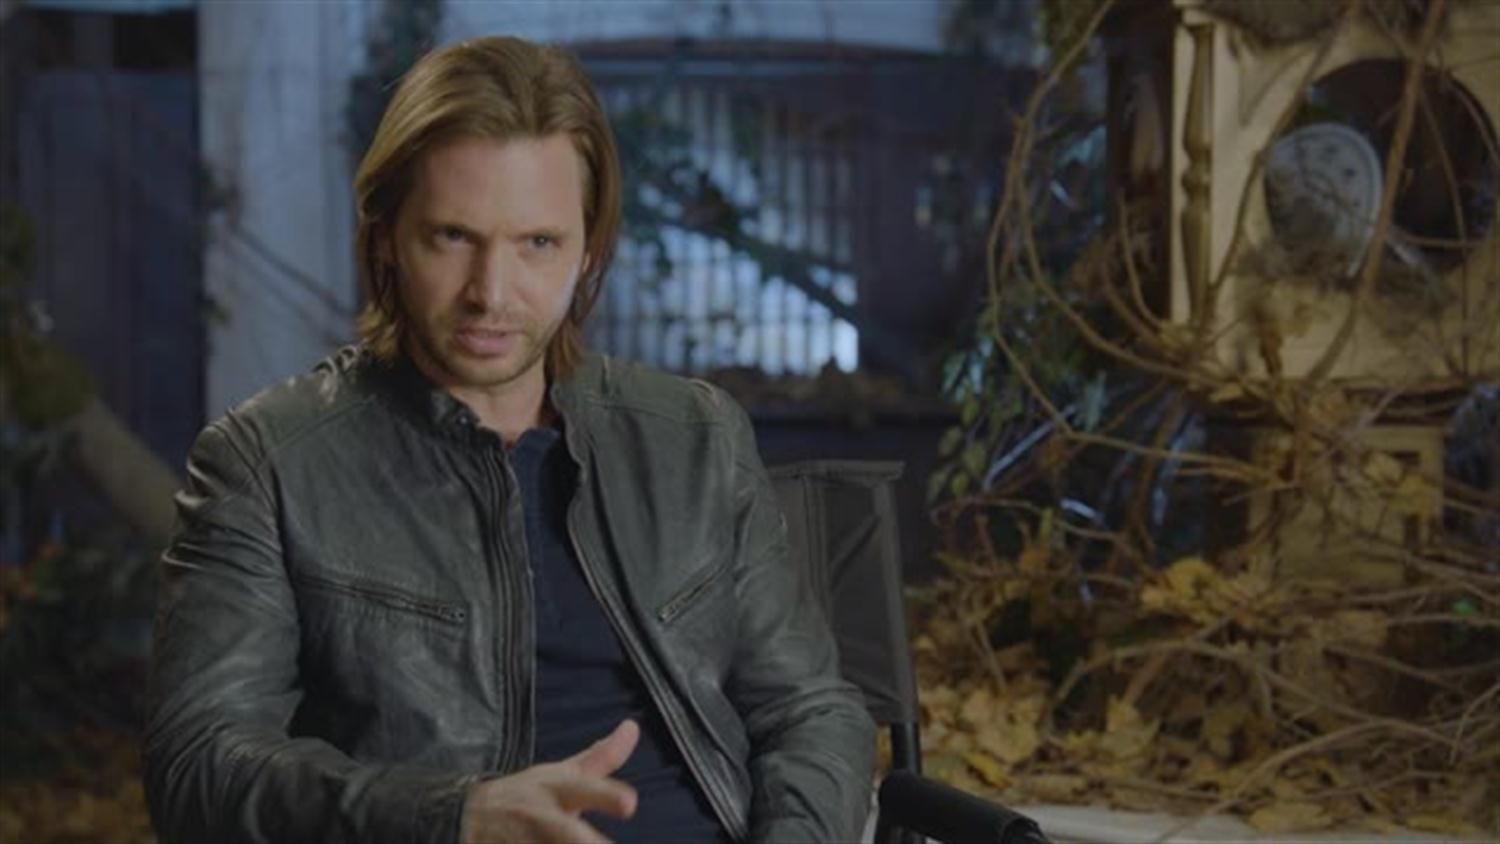 Inside 12 Monkeys: Season 3 Episode 4 – 12 Monkeys – Watch | SYFY WIRE